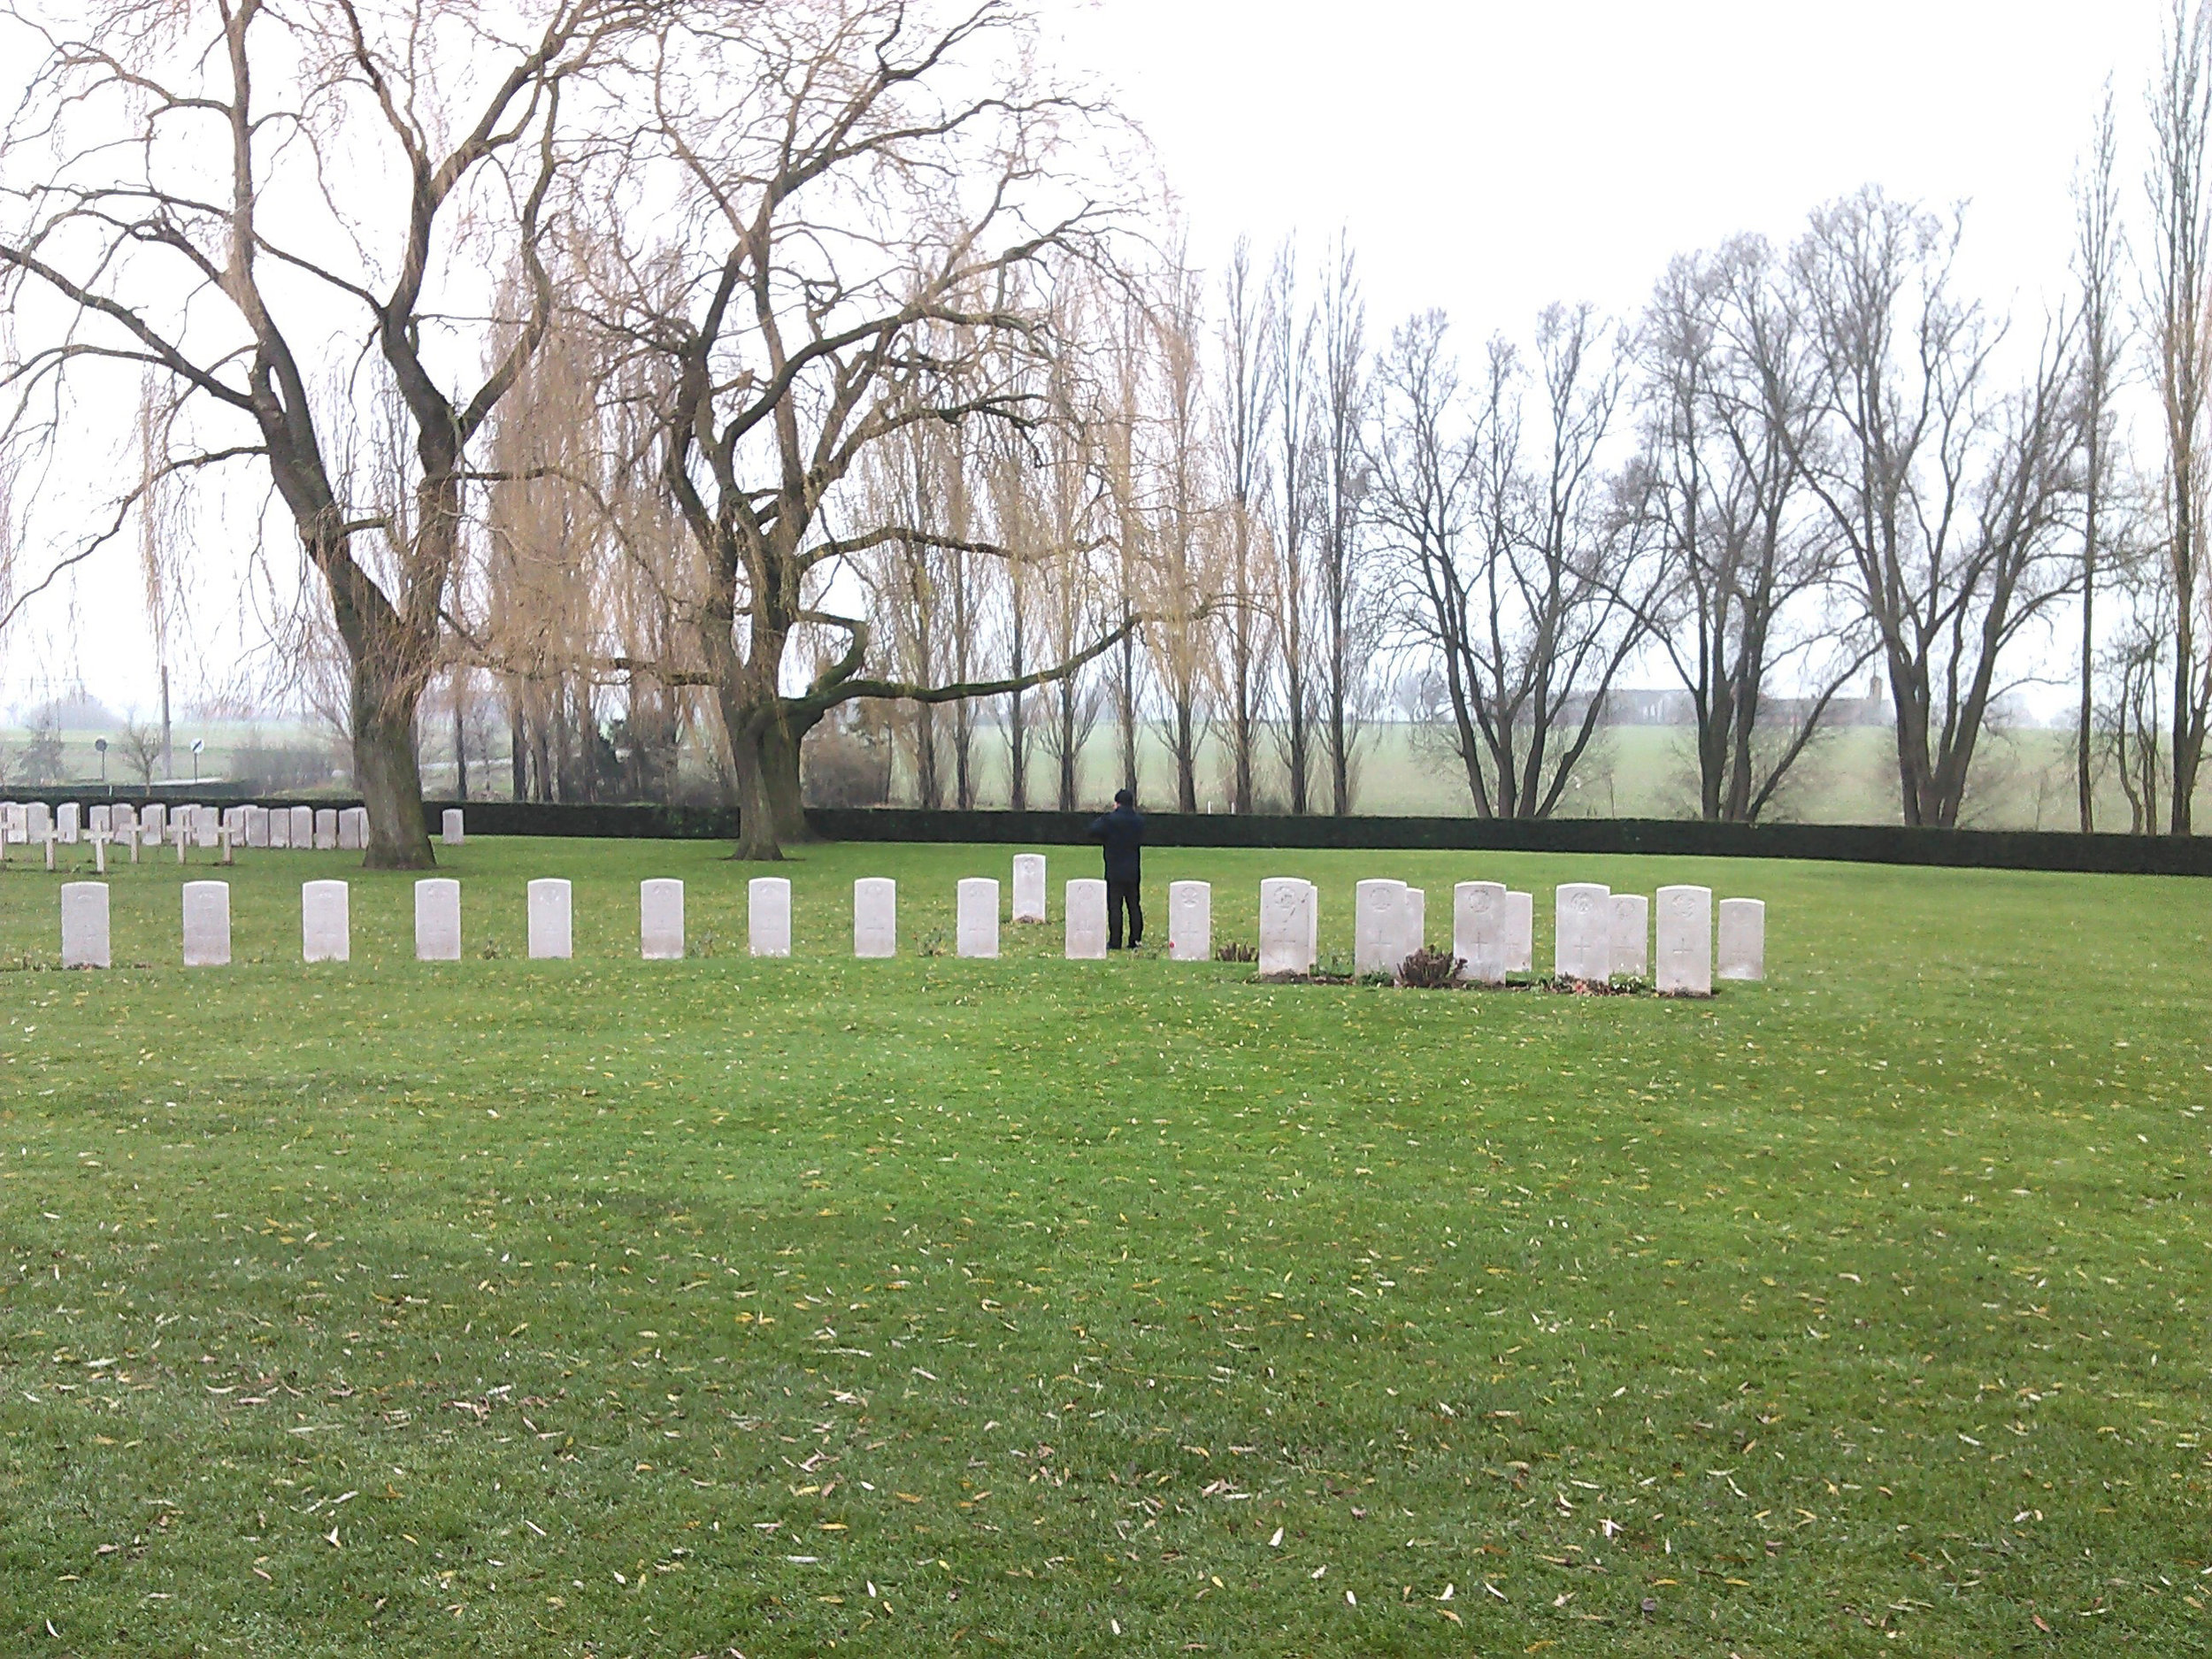 British historian Stephen Brumwell stops to examine a grave in the Lijssenthoek Military Cemetery, a Belgian hamlet located about 12 km west of Ypres. Situated on the main communication line between the Allied military bases in the rear and the Ypres battlefields — close to the front but out of the extreme range of German field artillery — Lijssenthoek was a natural place to establish several casualty clearing stations.